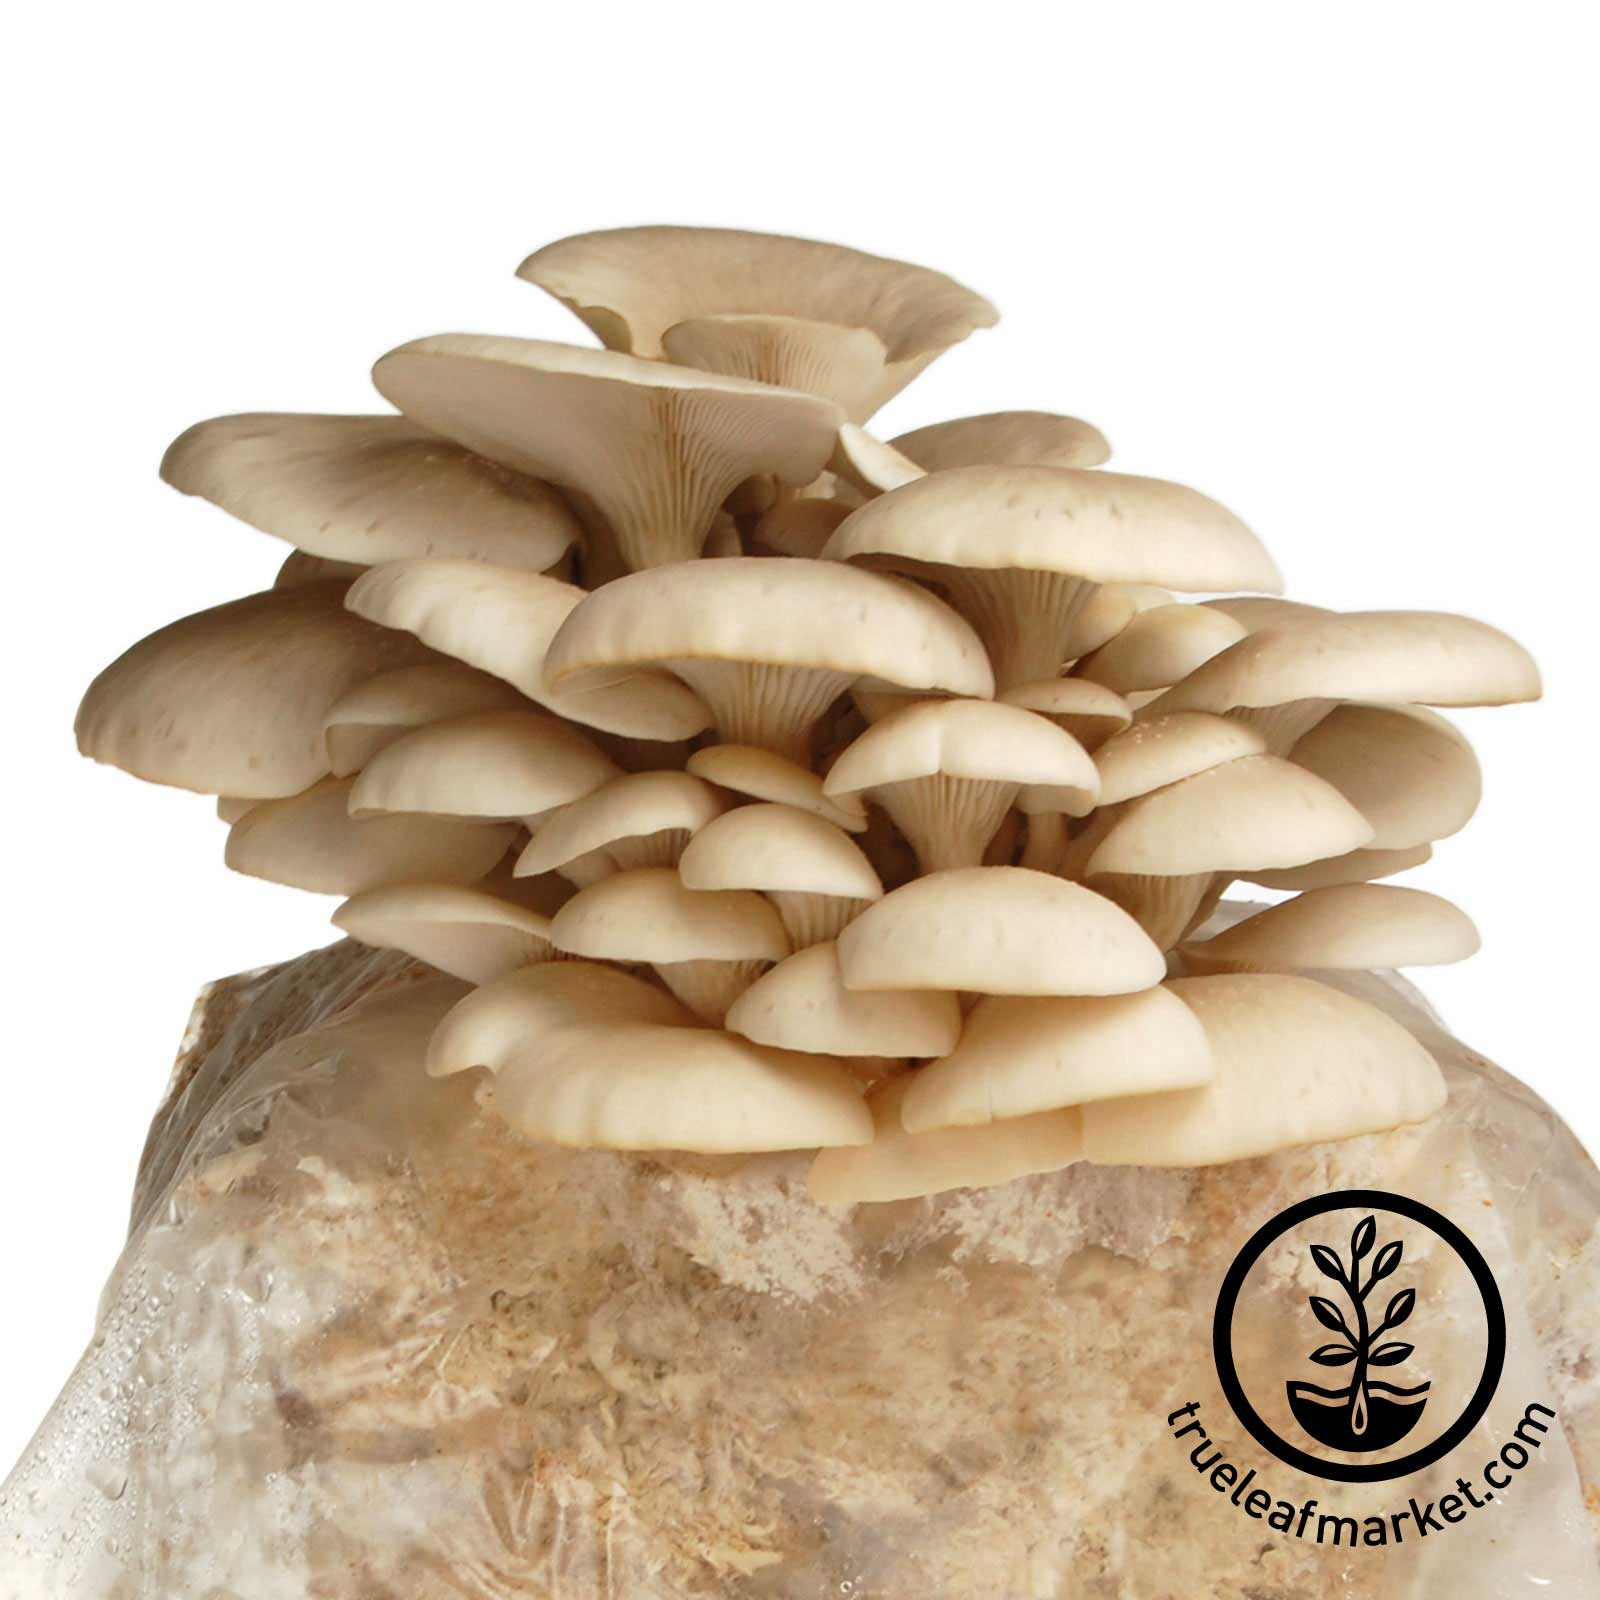 The Mojo Pro-Gro Elm Oyster Mushroom Grow Kit mojo, pro, gro, mushrooom, shittake, grow, kit, organic